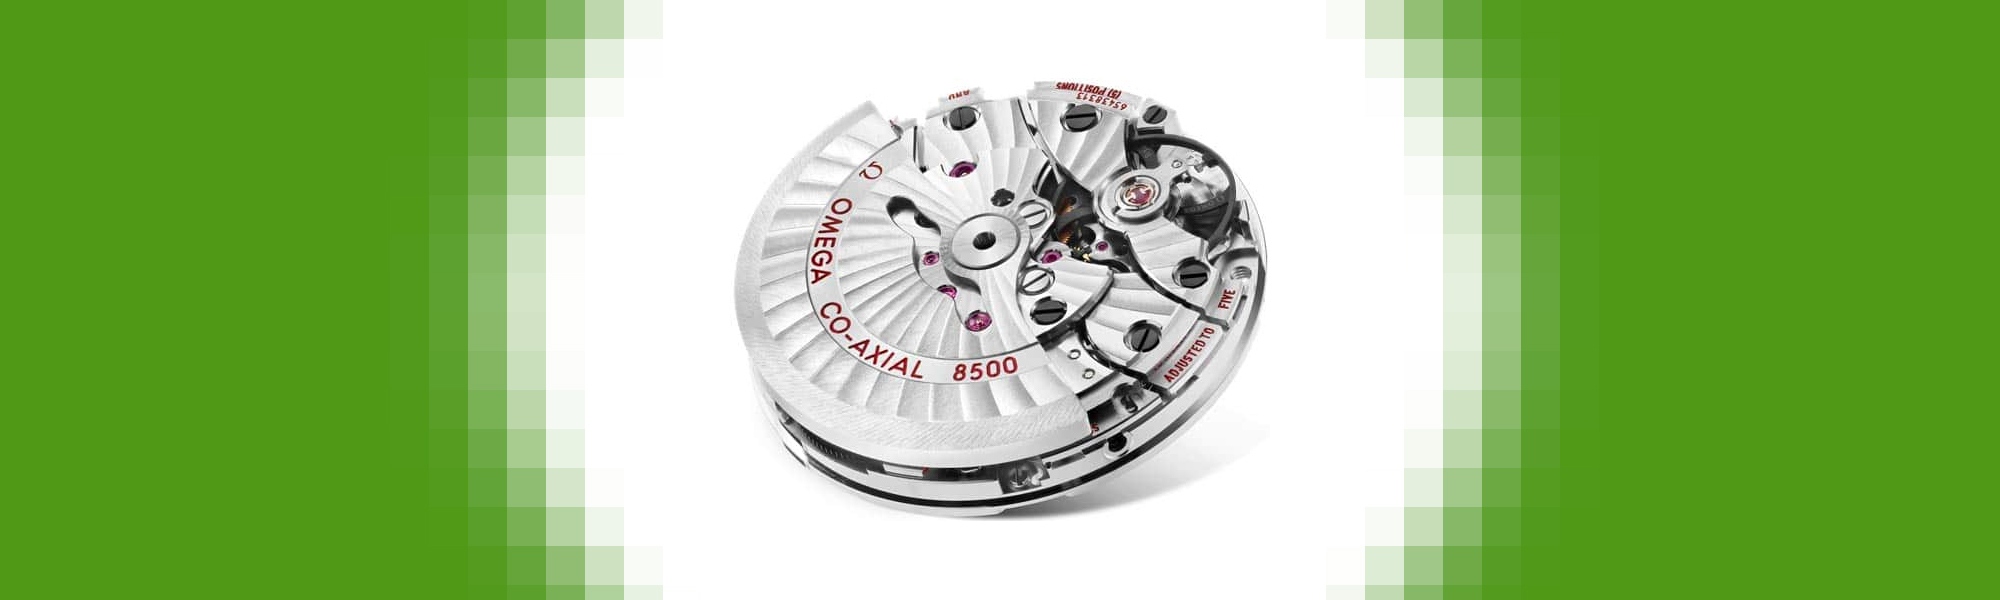 omega caliber 8500 movement